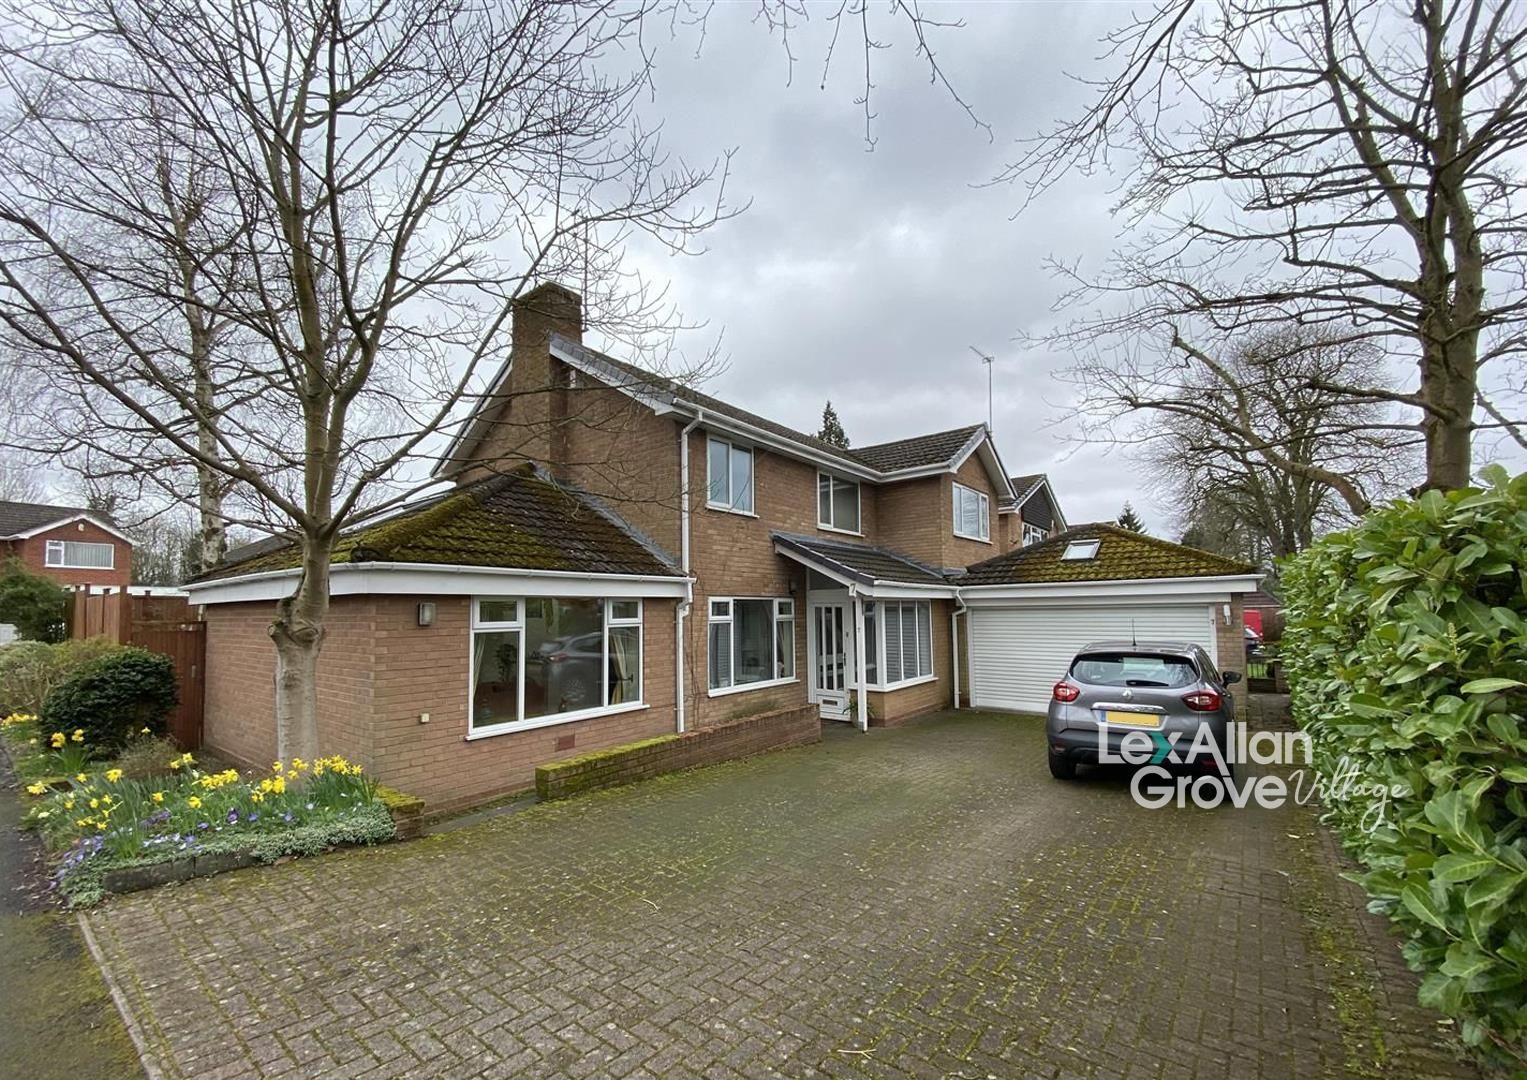 4 bed detached for sale in Blakedown  - Property Image 1